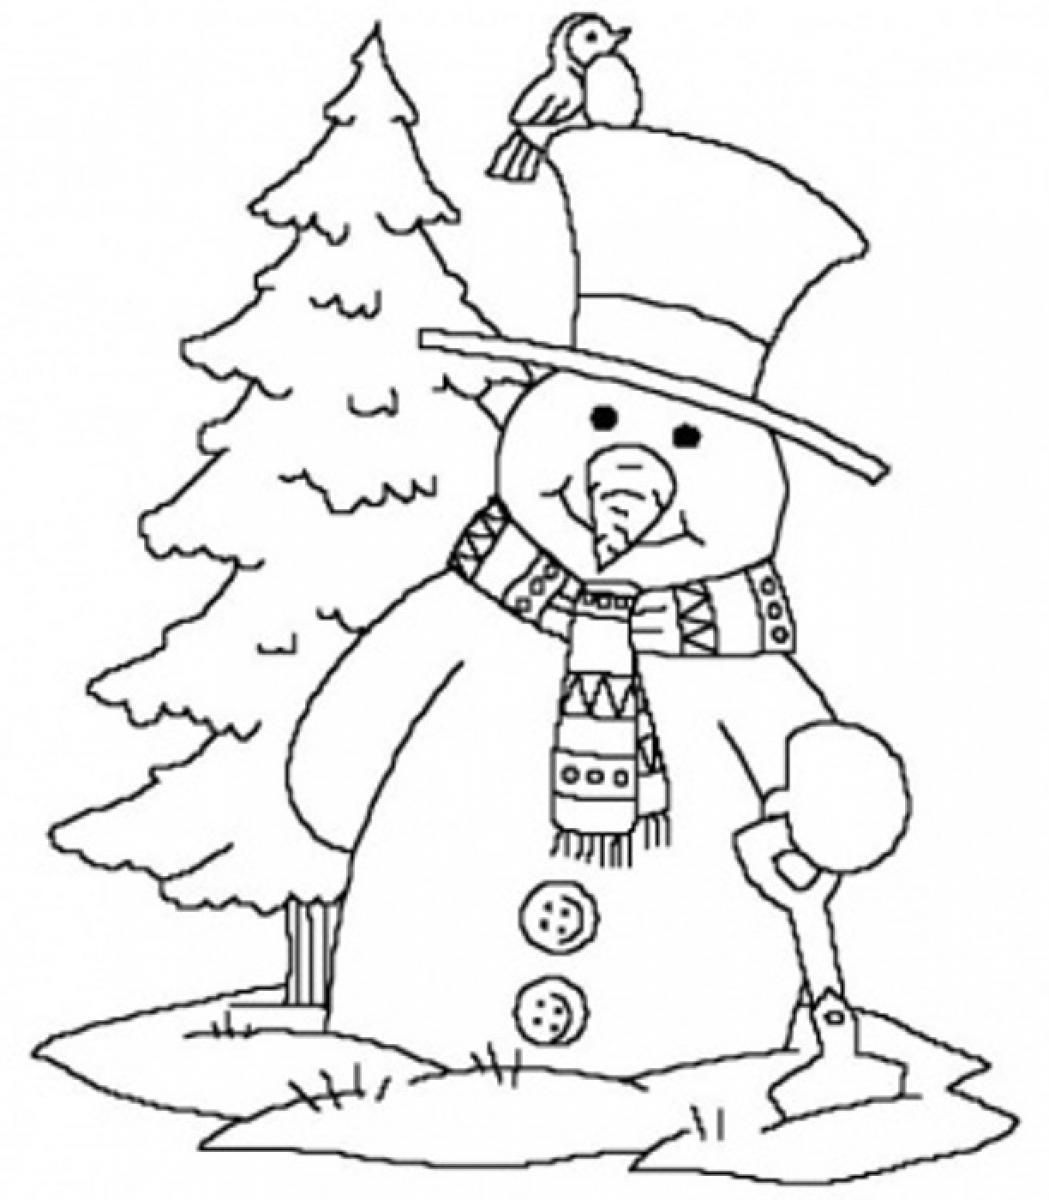 whether it is winter or not winter theme coloring pages would be real fun to